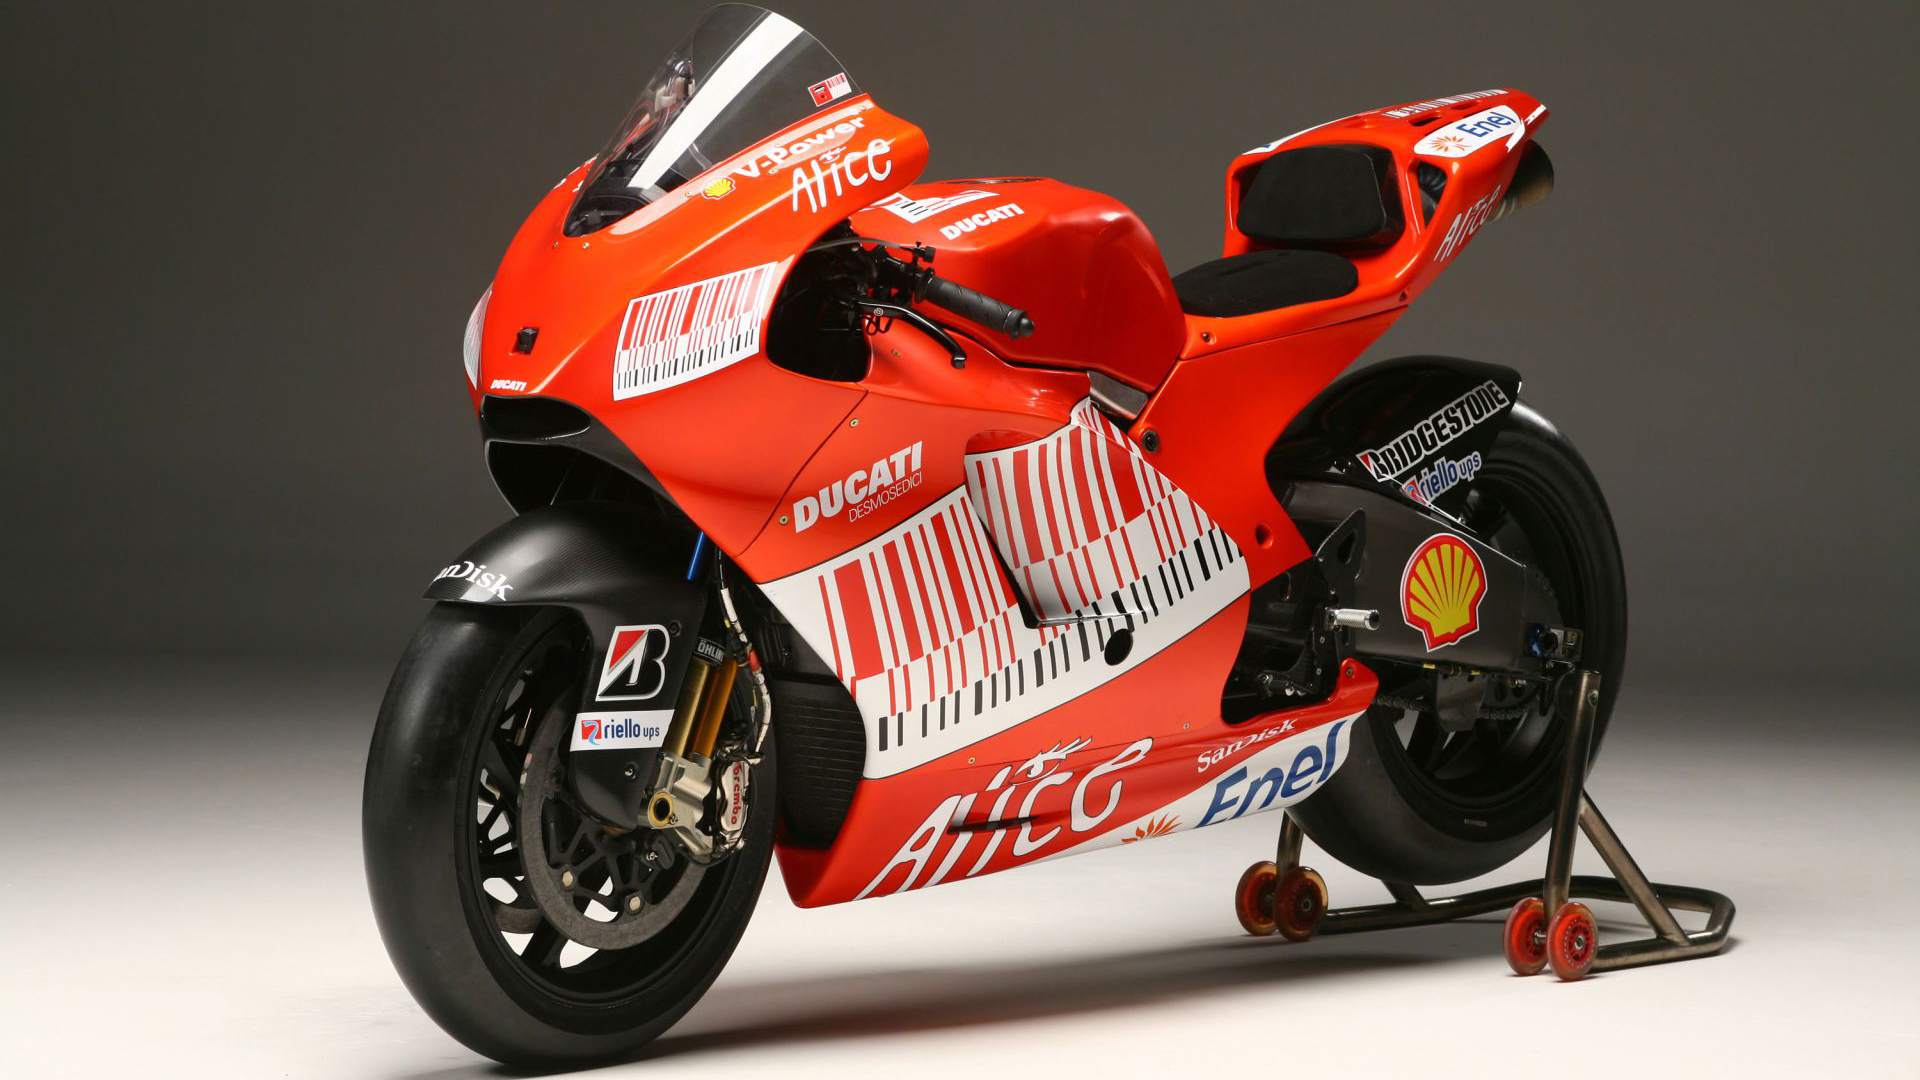 Download image Bike Wallpaper Ducati Super Sports PC Android iPhone 1920x1080